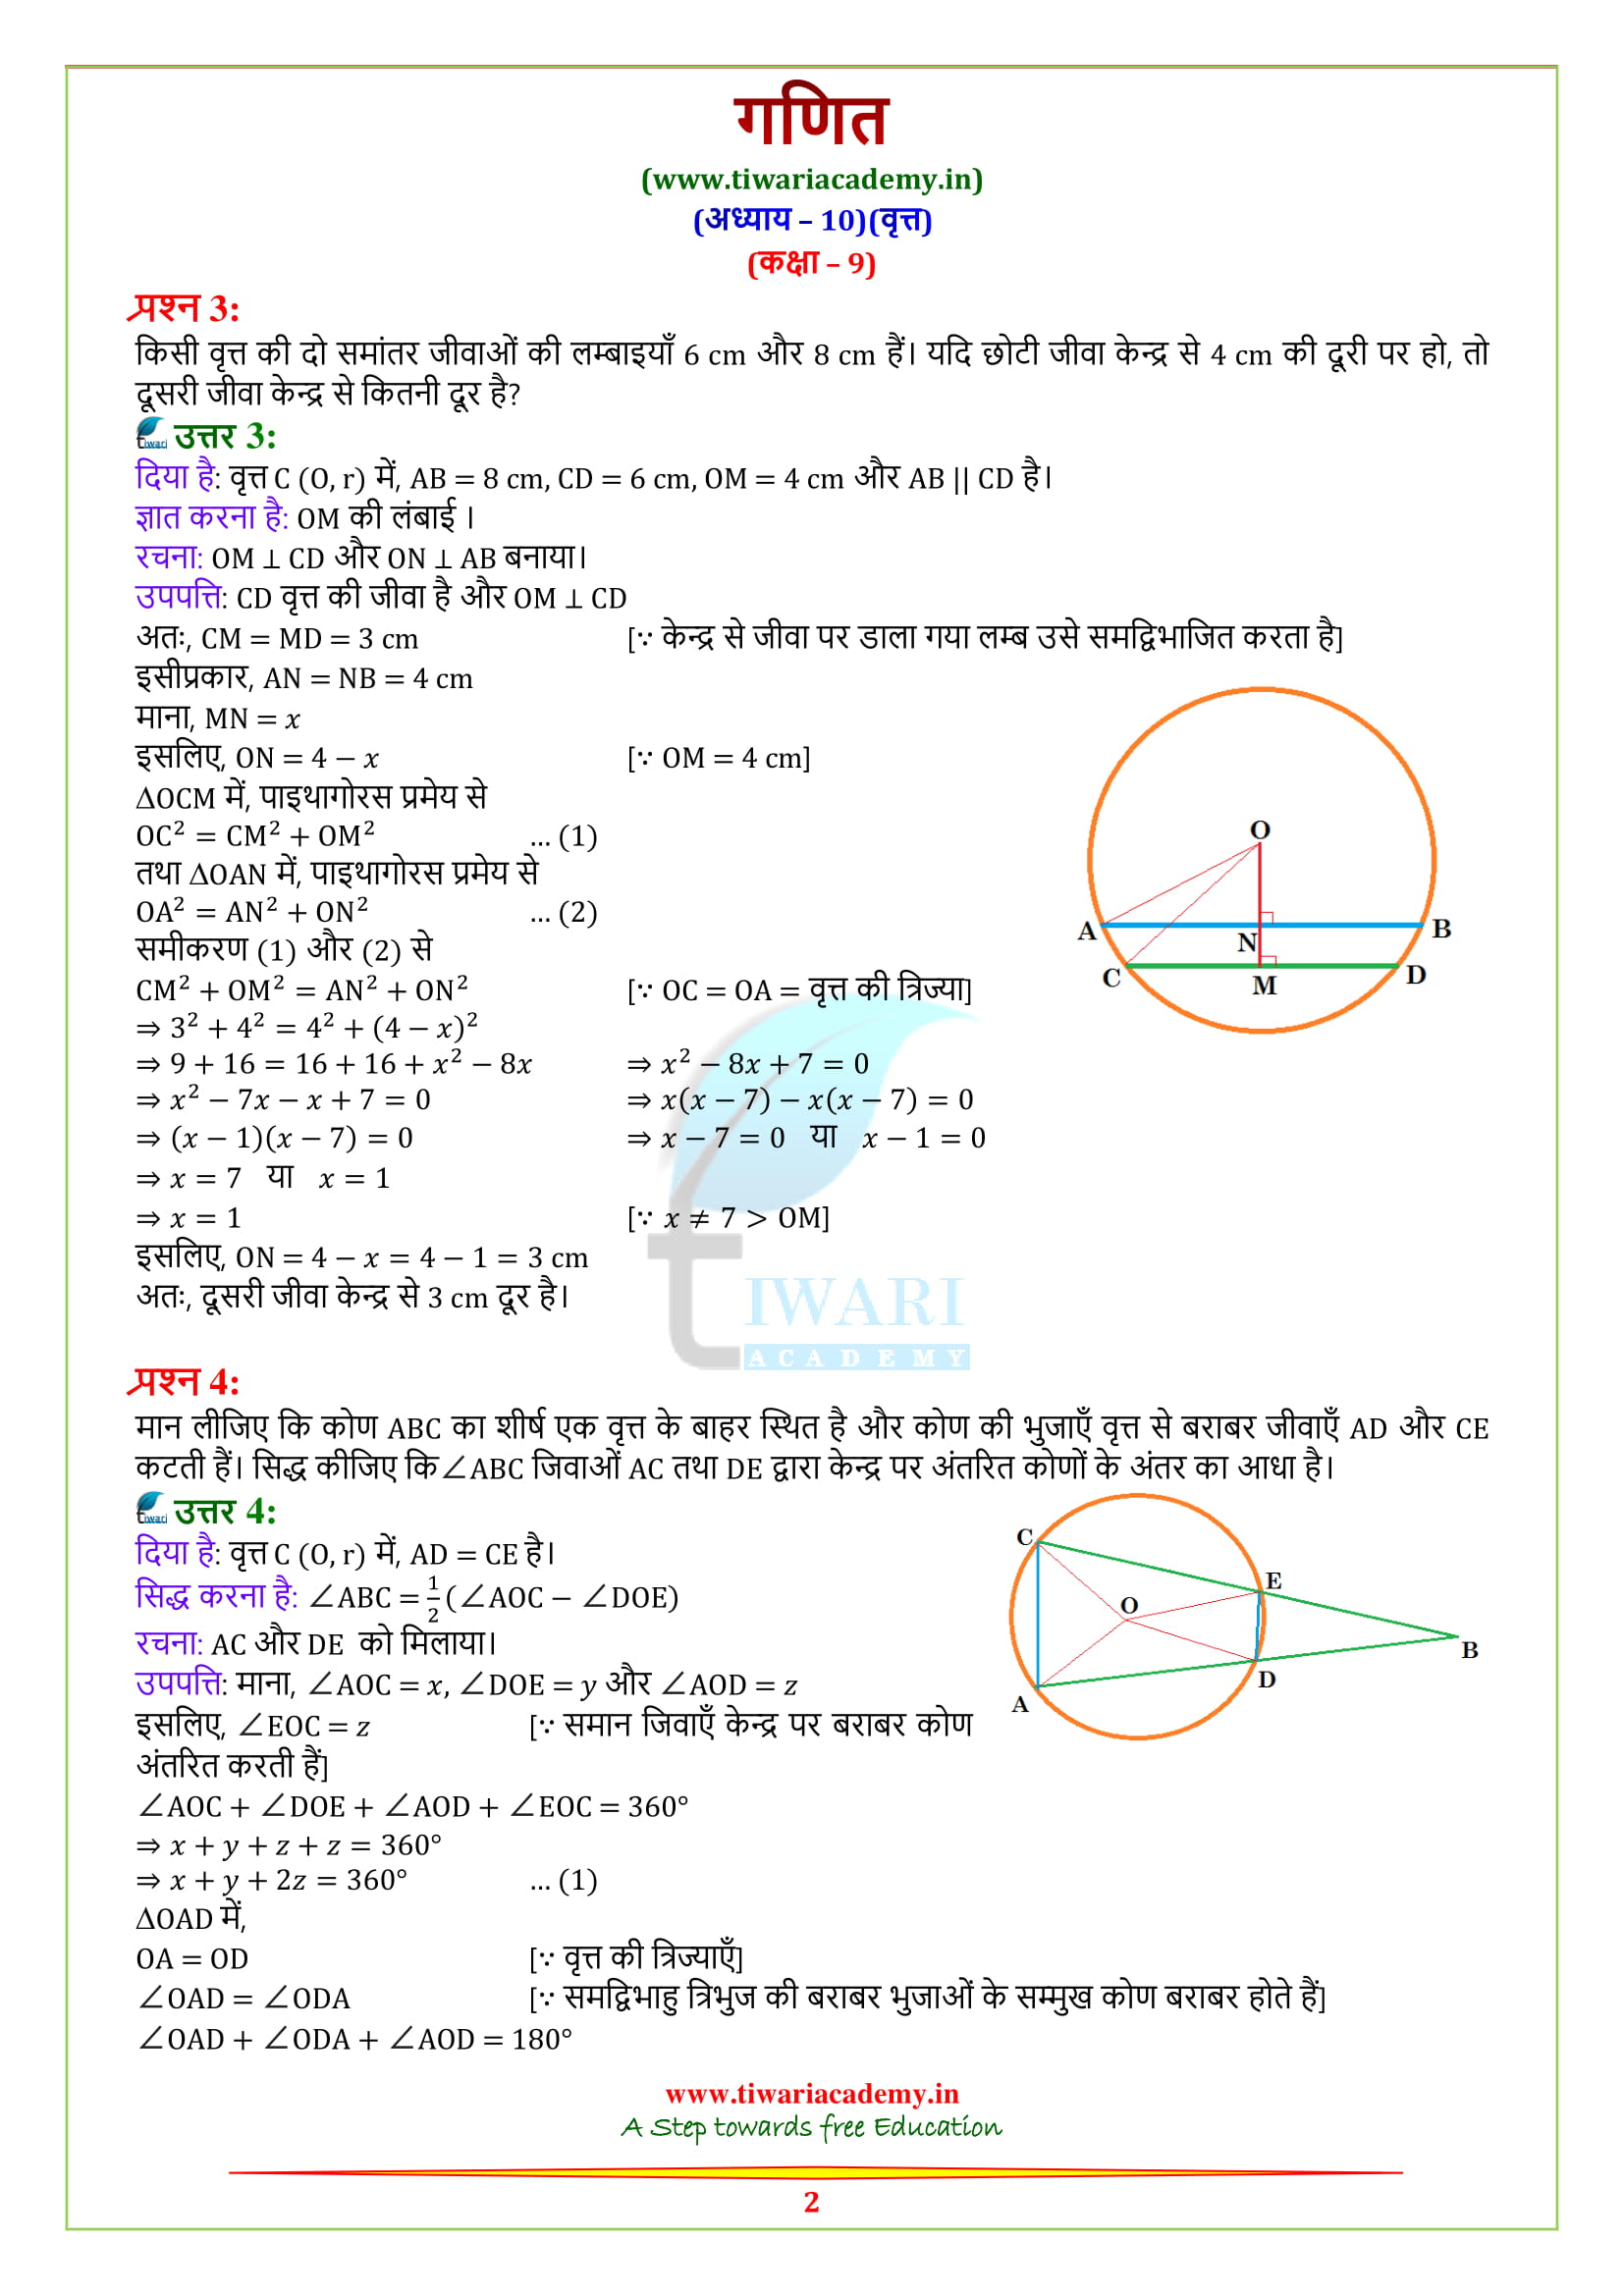 NCERT Solutions for class 9 Maths exercise 10.6 all question answers